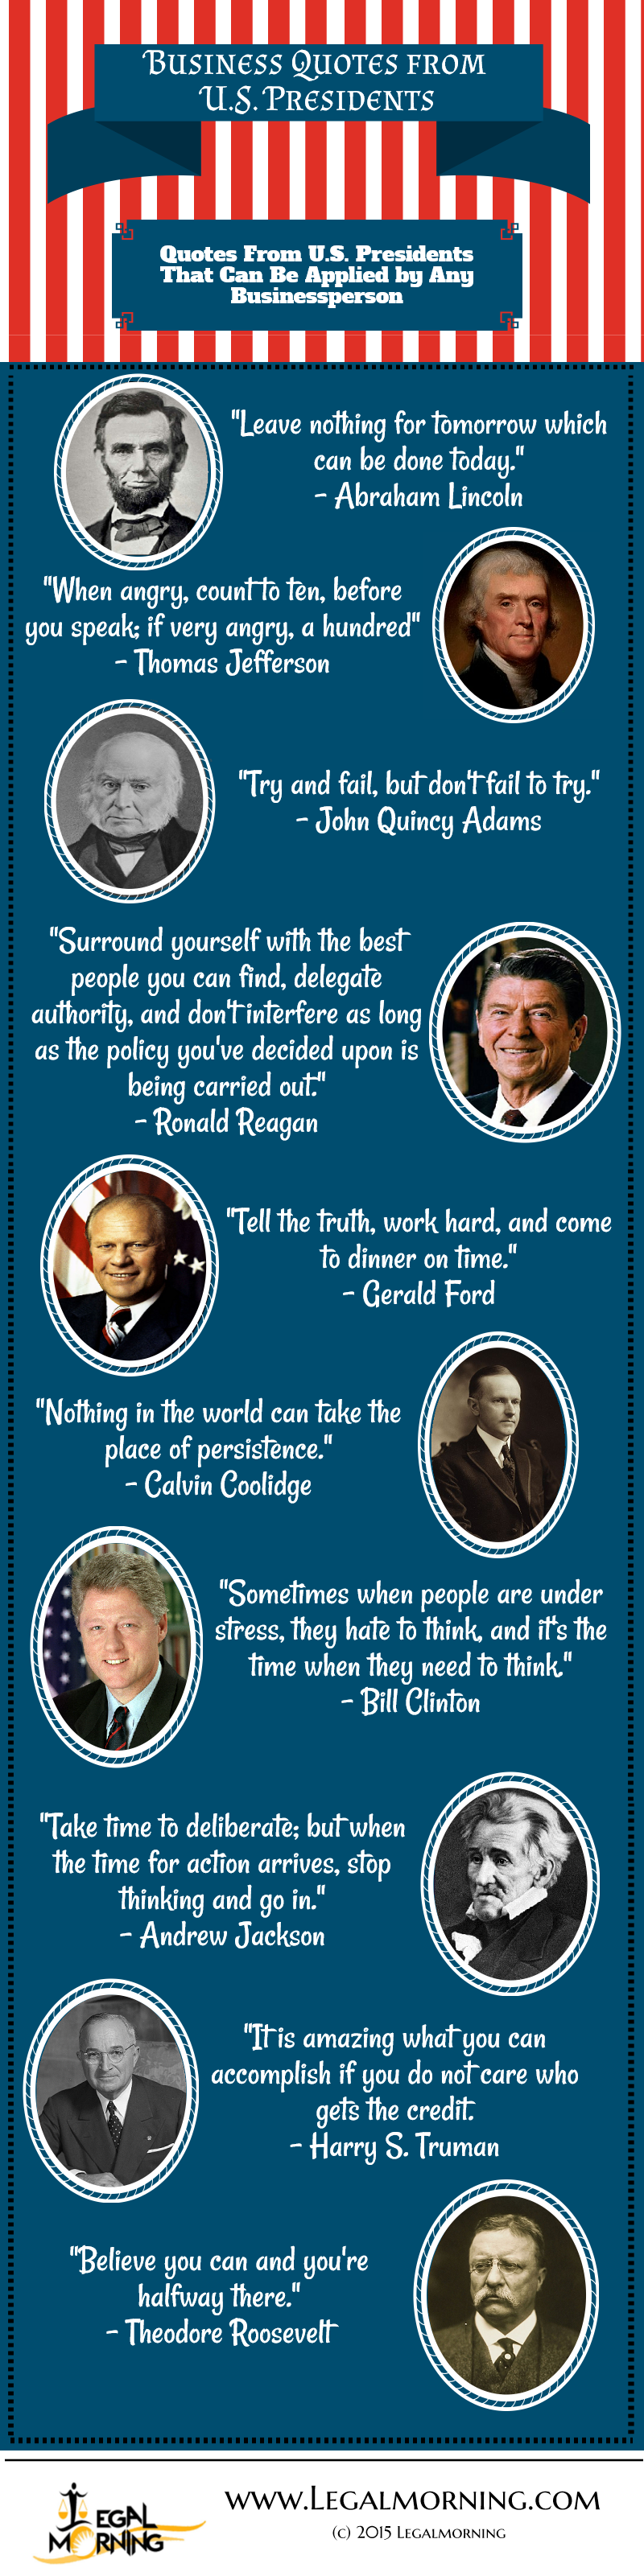 Business-Quotes-from-U.S.-Presidents-1